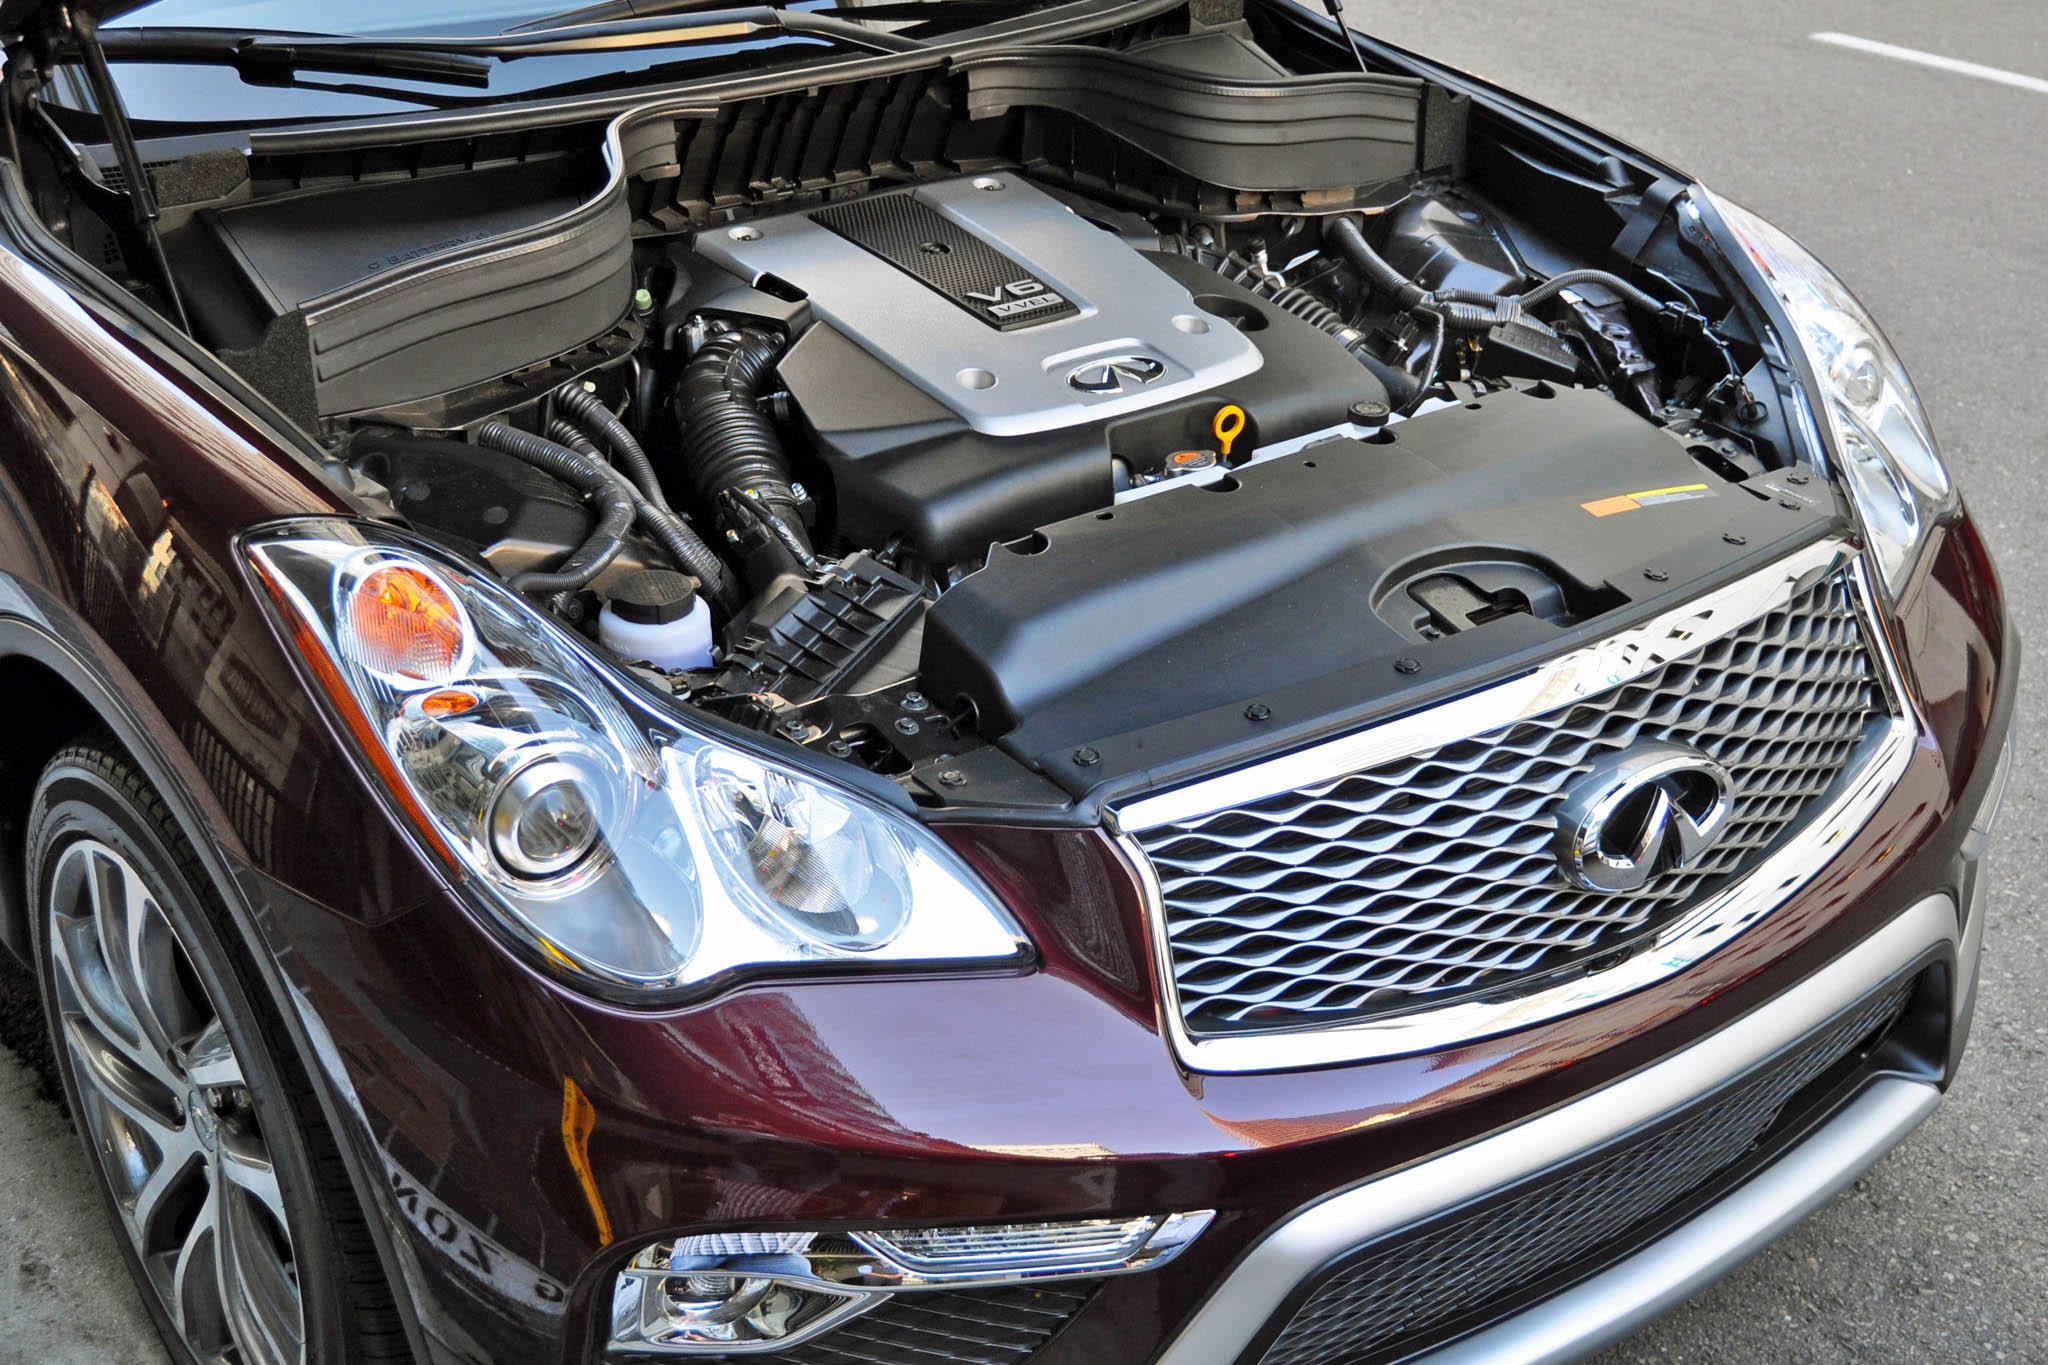 The 2016 Infiniti QX50 remains a niche vehicle, best appreciated by